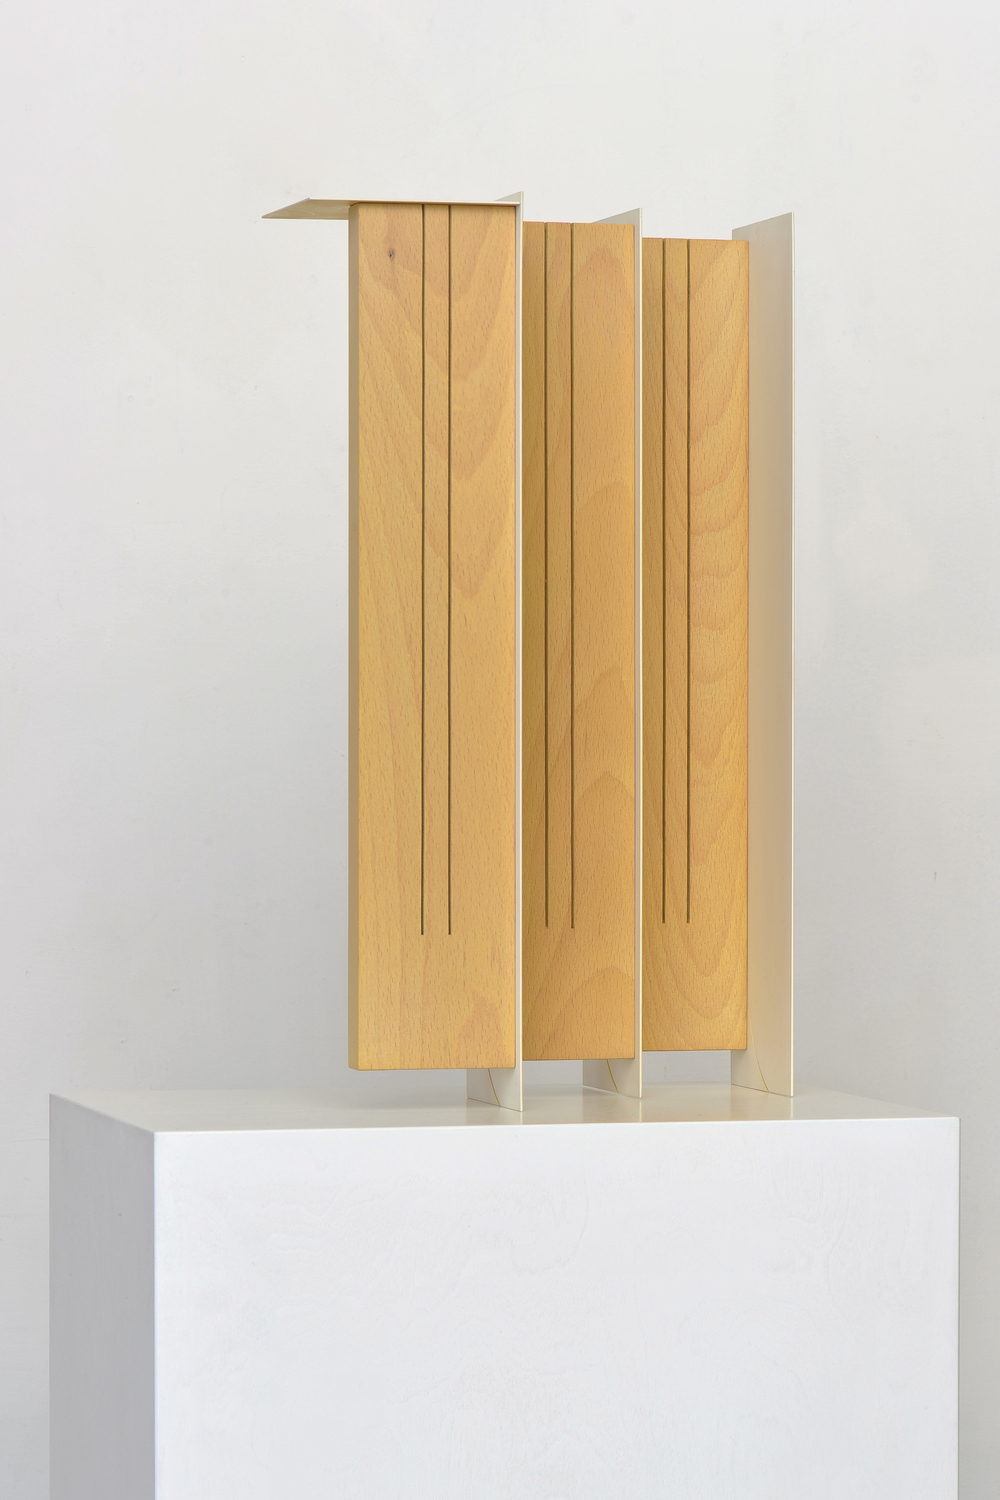 Screen 2014 Euro-beech hardwood, steel, copper rivets, enamel, wax 43.1 x 25.4 x 16.5 cm / 17 x 10 x 6.5 in Plinth: 91.4 x 38.1 x 27.9 cm / 36 x 15 x 11 in